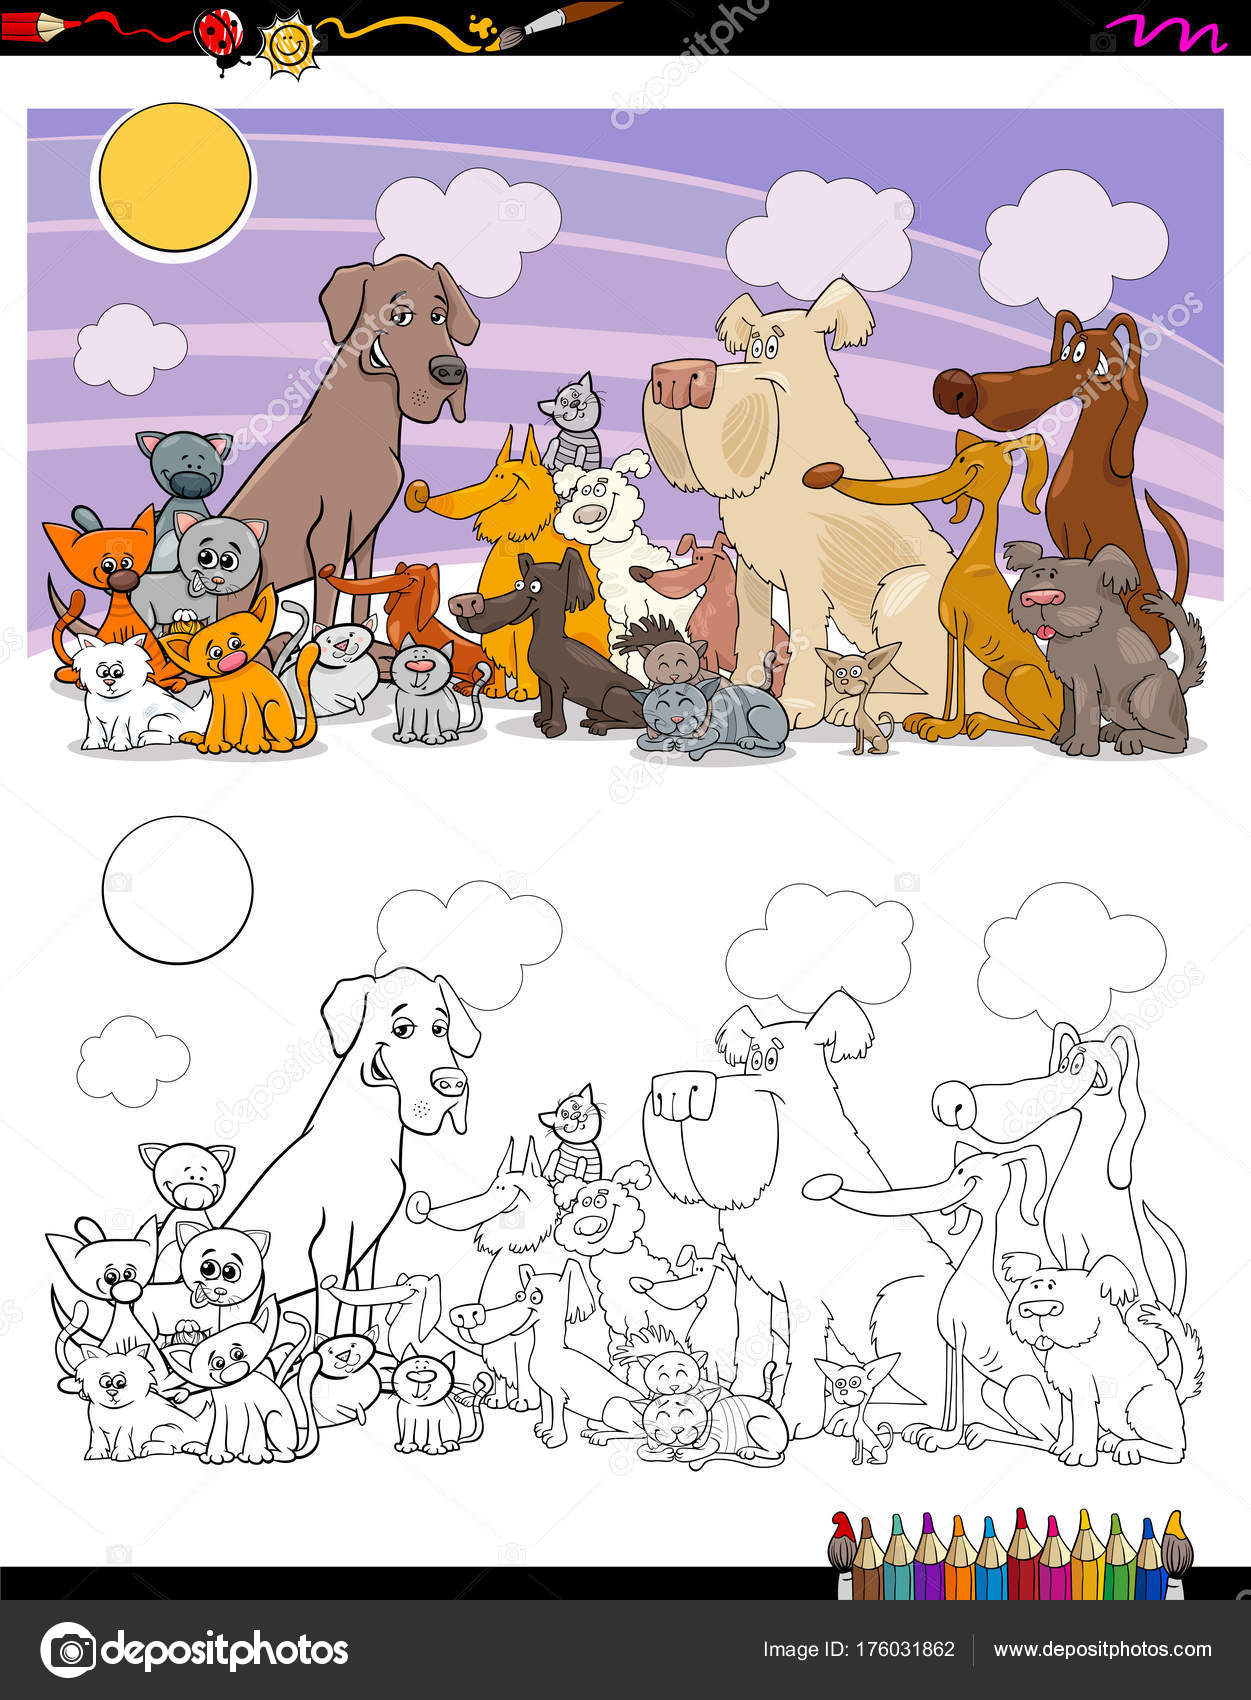 Https Cz Depositphotos Com 176031862 Stock Illustration Cats And Dogs Characters Coloring Html